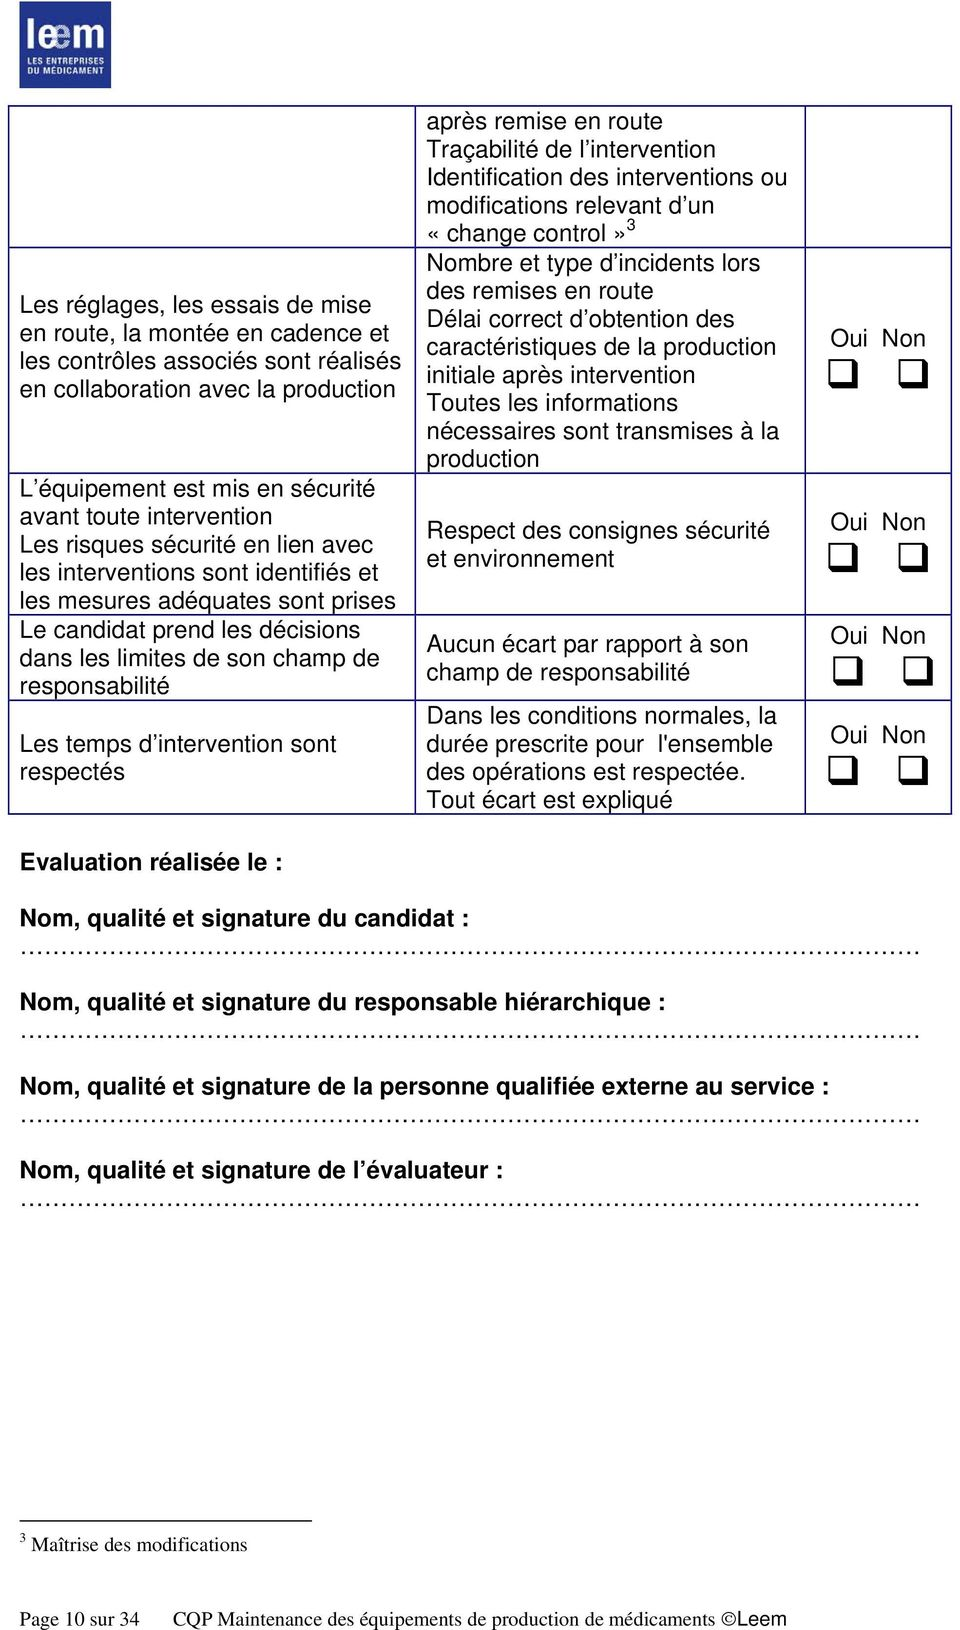 intervention sont respectés Evaluation réalisée le : après remise en route Traçabilité de l intervention Identification des interventions ou modifications relevant d un «change control» 3 Nombre et